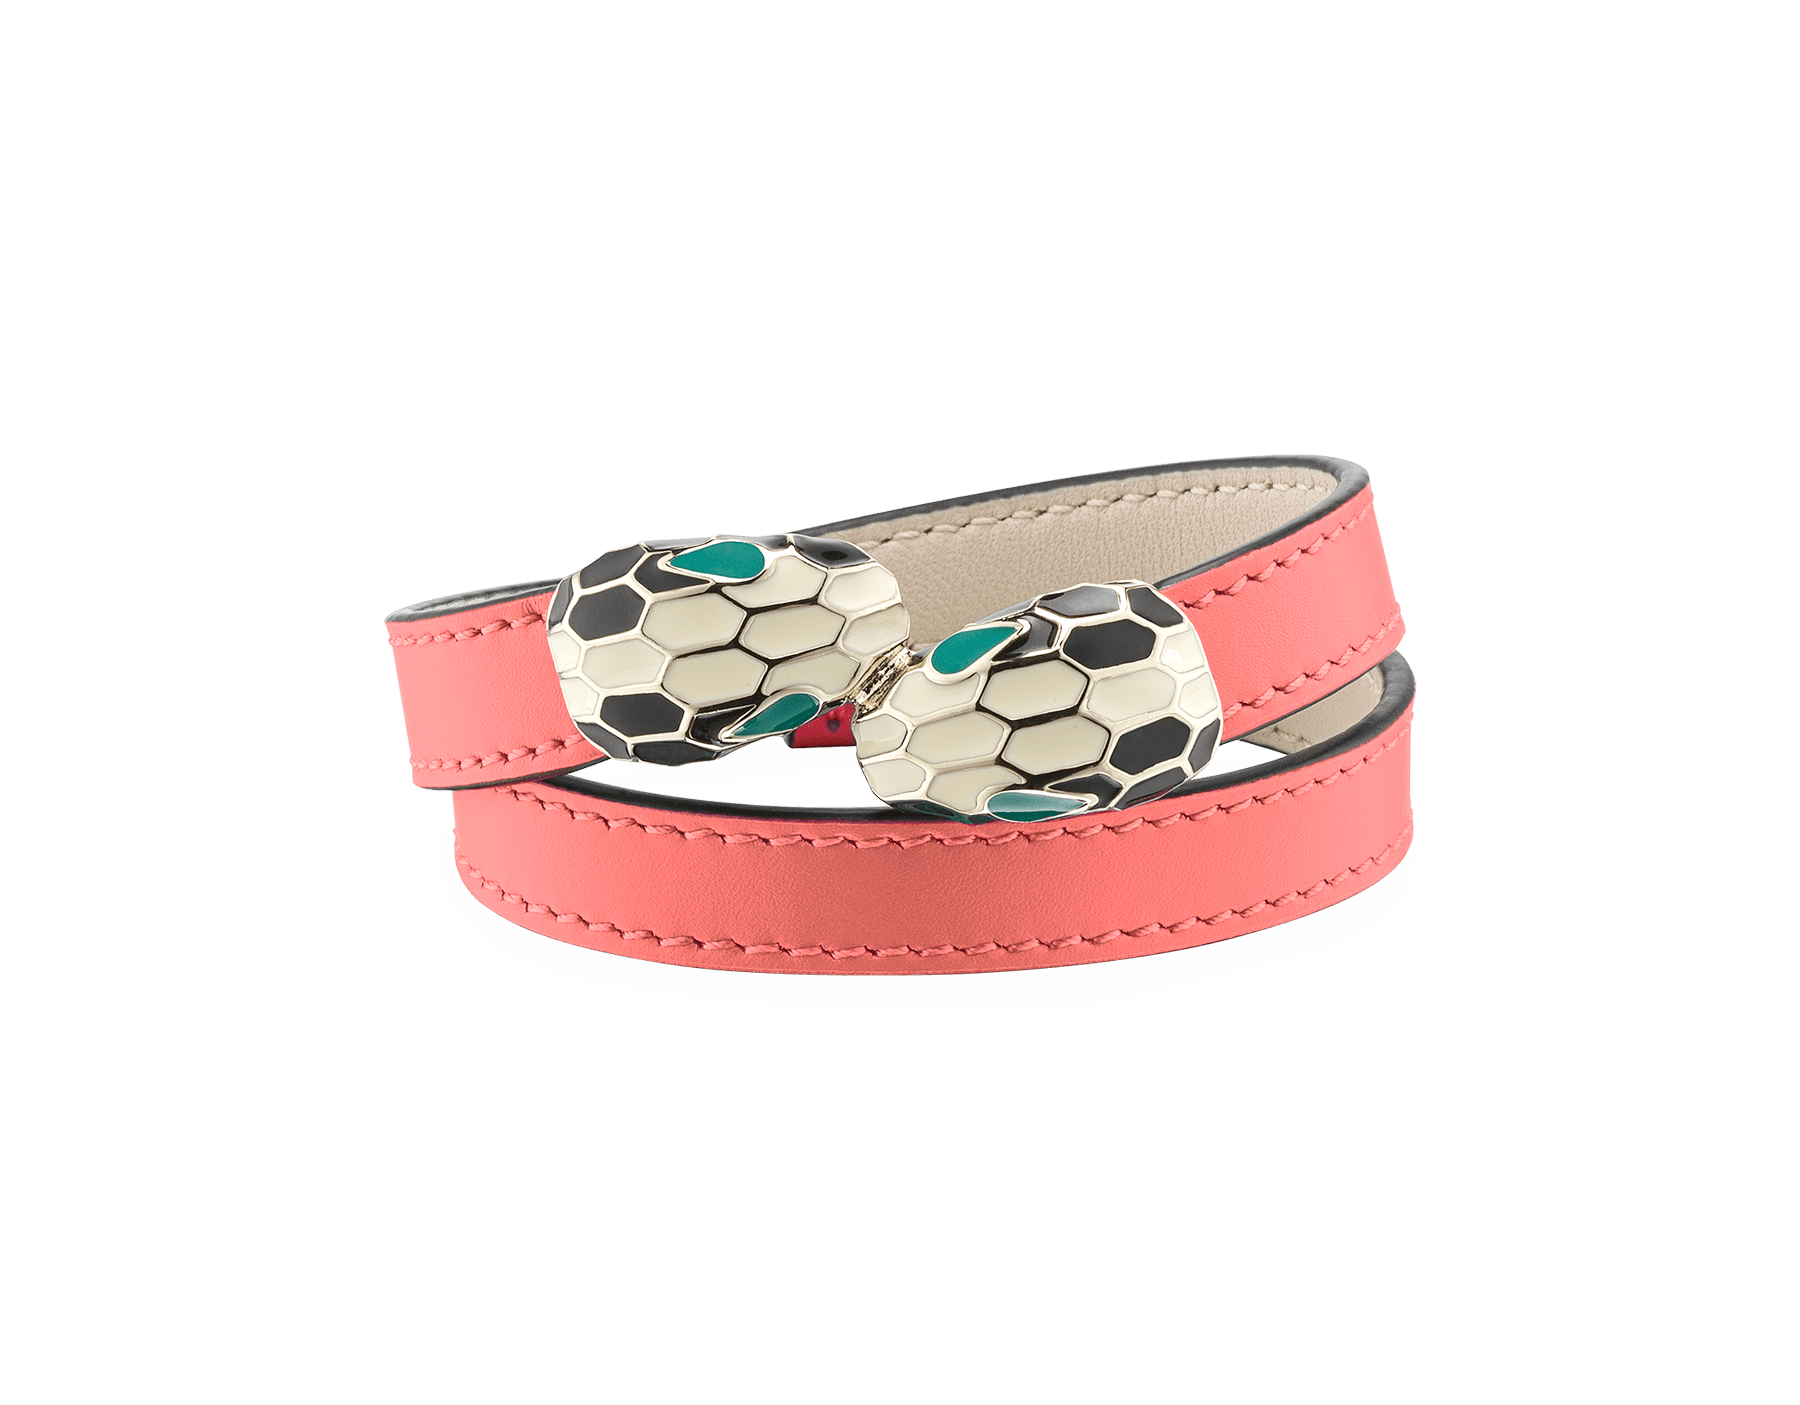 Serpenti Forever multi-coiled bracelet in silky coral calf leather, with light gold plated brass hardware. Iconic contraire snake head décor in black and white enamel, with green enamel eyes. MCSerp-CL-SC image 1